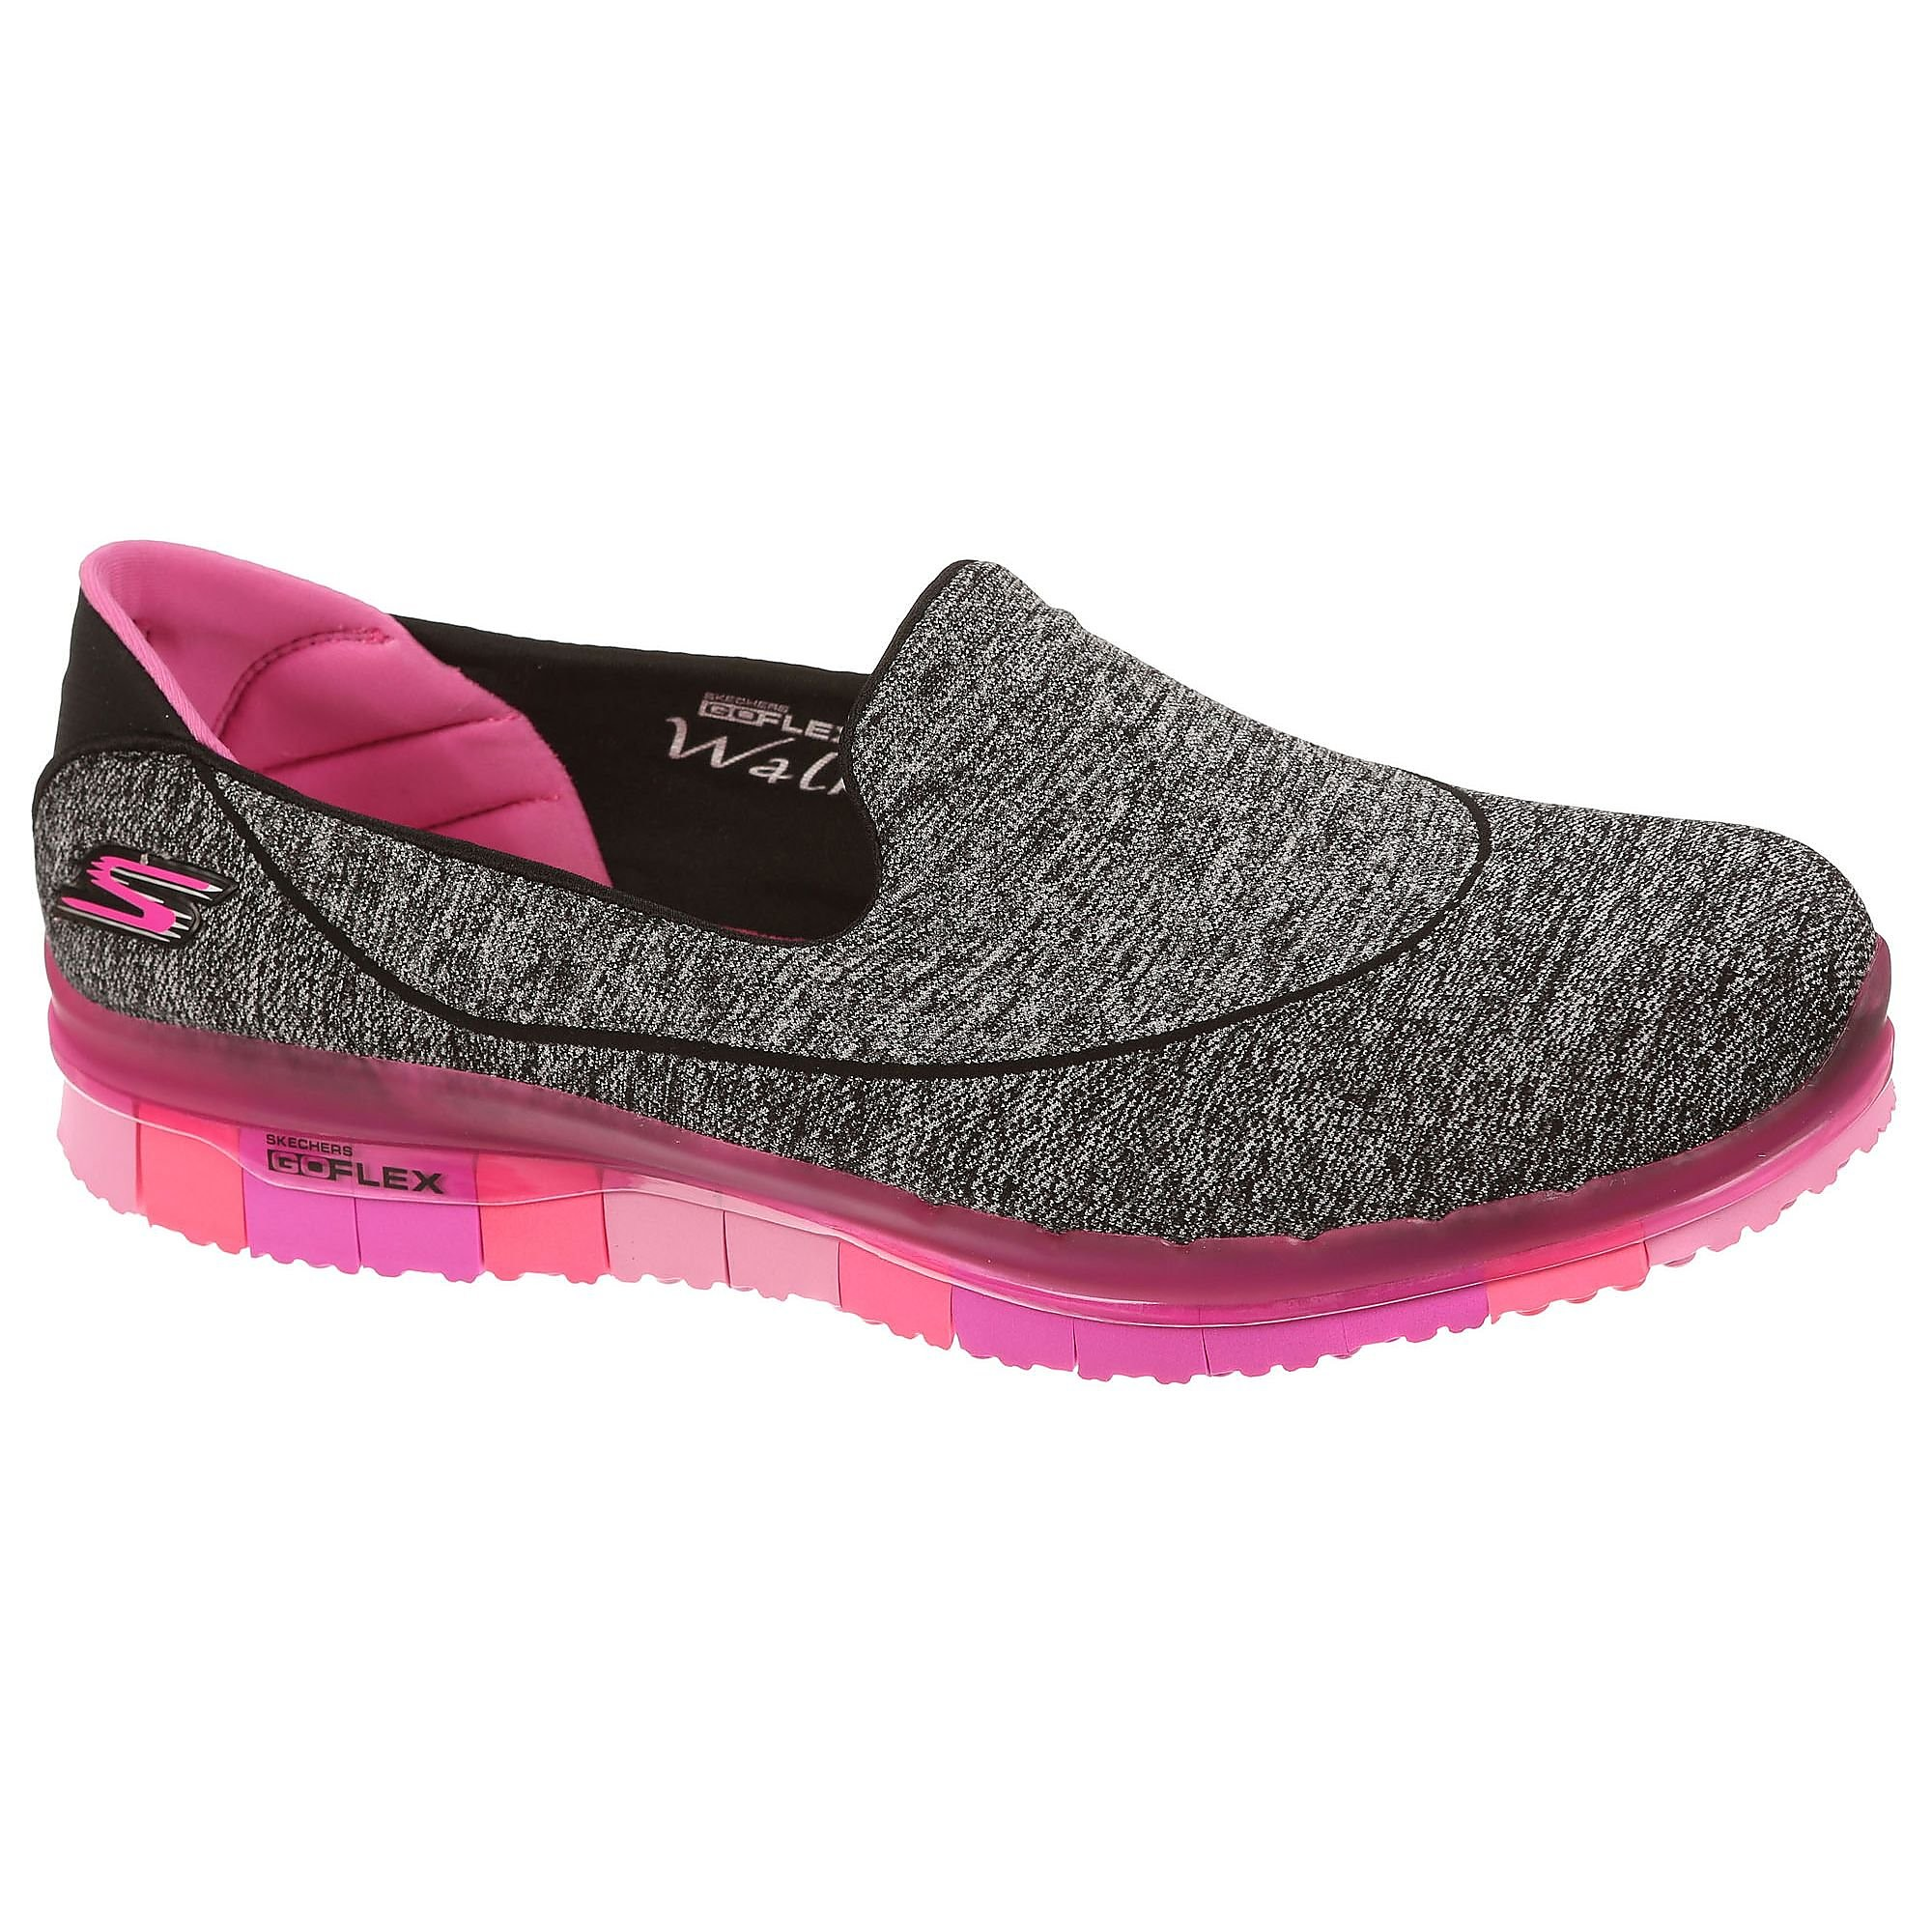 SKECHERS S BEACH D SLIPPER